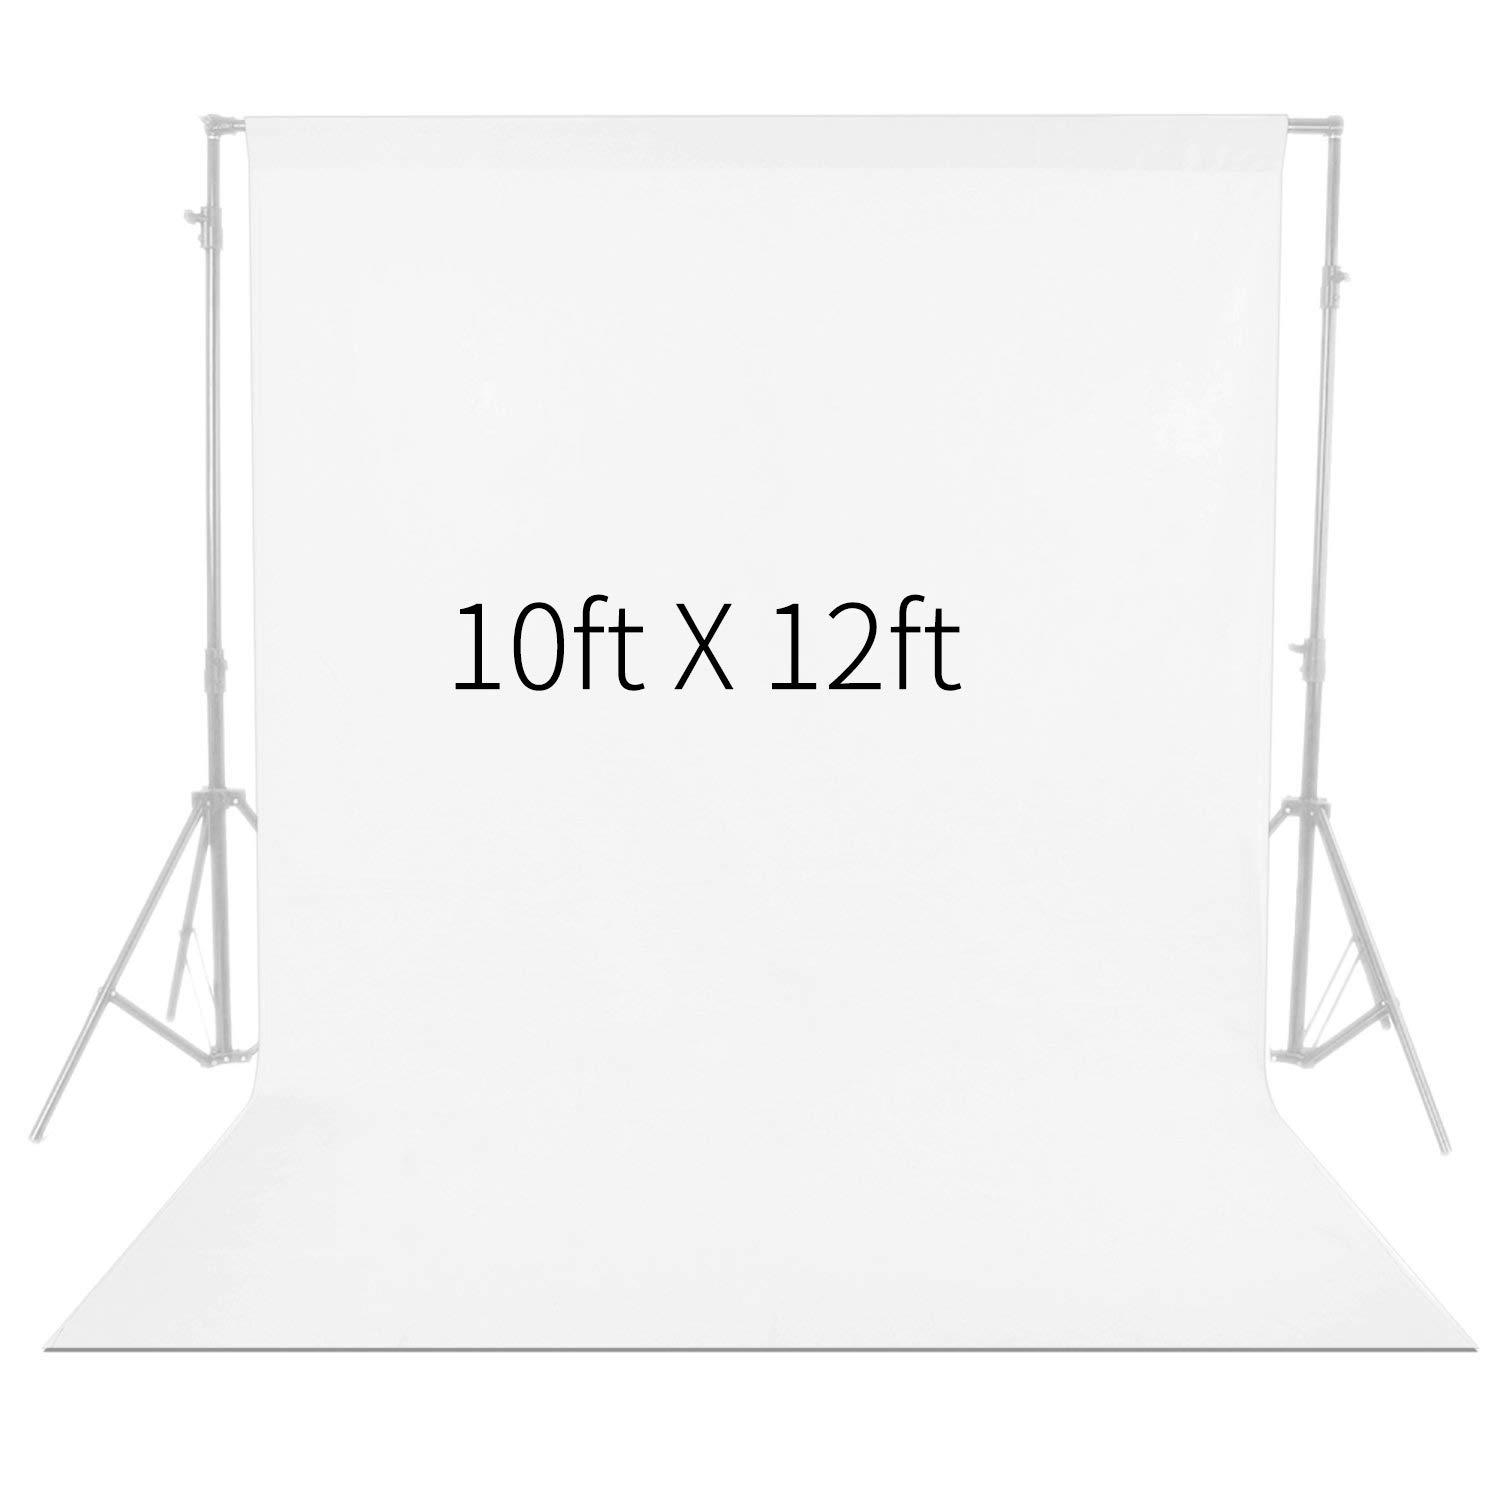 Neewer 10 x 12FT / 3 x 3.6M PRO Photo Studio Fabric Collapsible Backdrop Background for Photography,Video and Televison (Background ONLY) - White by Neewer (Image #1)